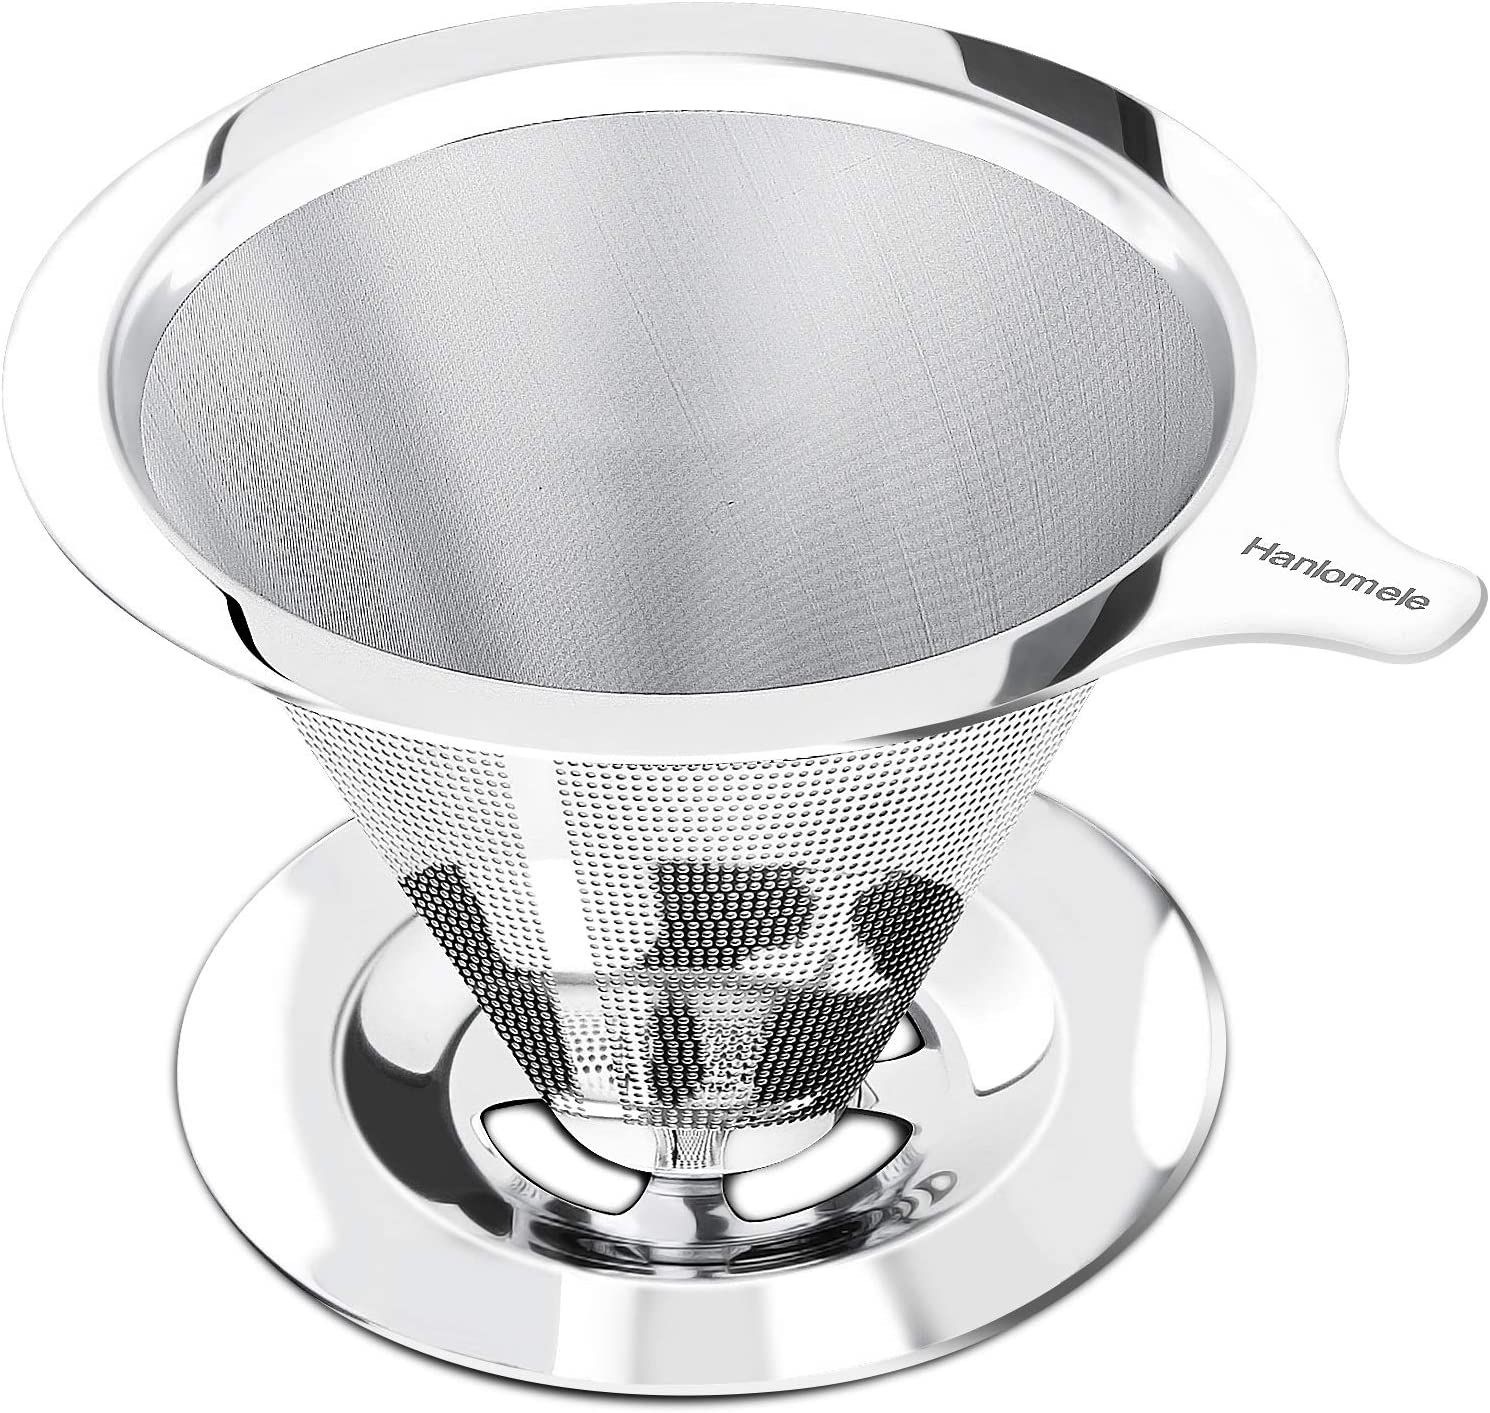 Hanlomele Pour Over Coffee Filter Pour Over Coffee Maker for Single Cup Brew Paperless Reusable Coffee Filter Double Mesh Design of Stainless Steel Cone Filter for Perfect Extraction.